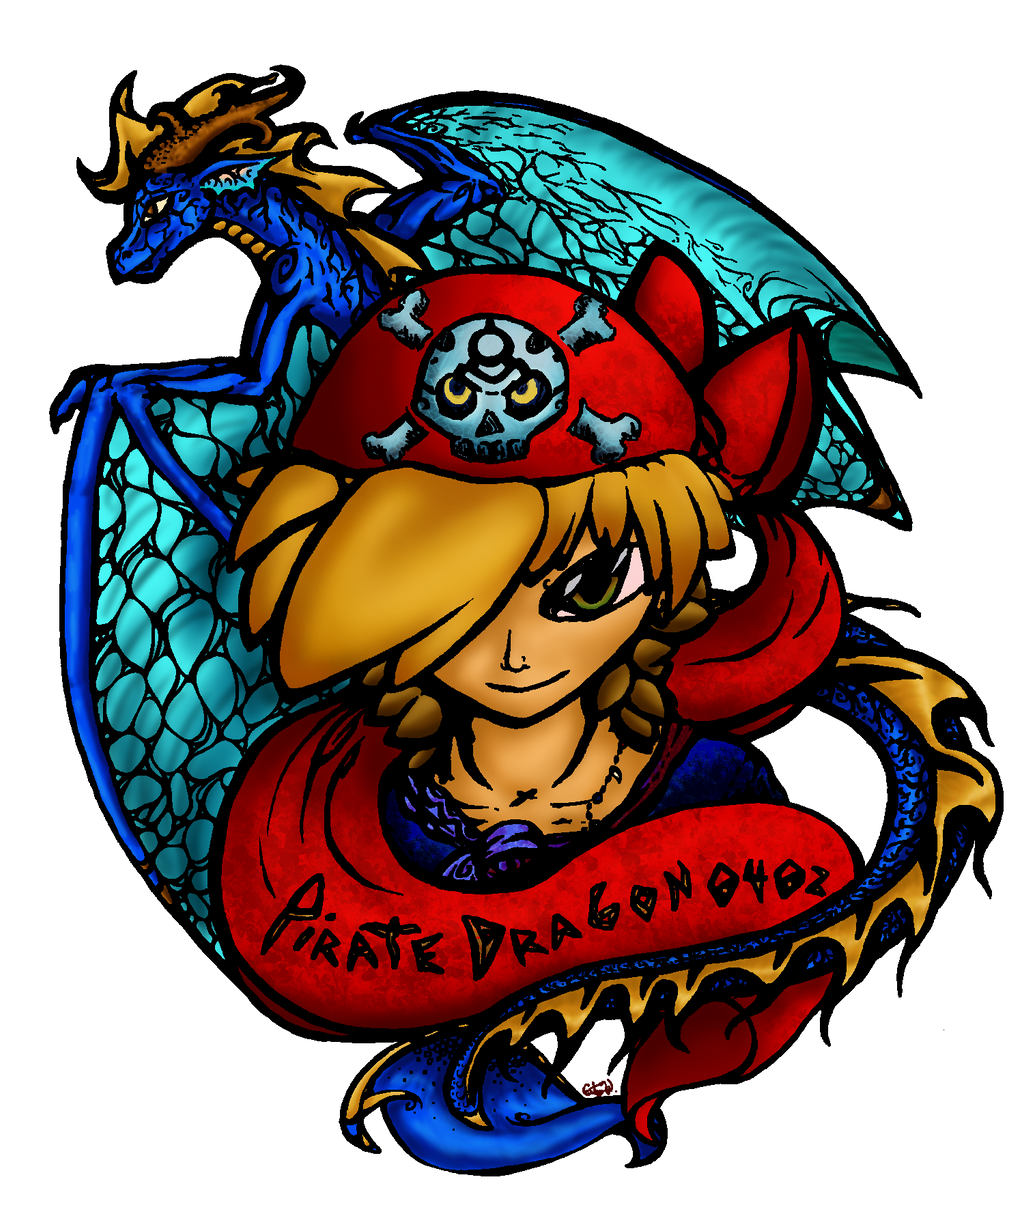 piratedragon0402's Profile Picture